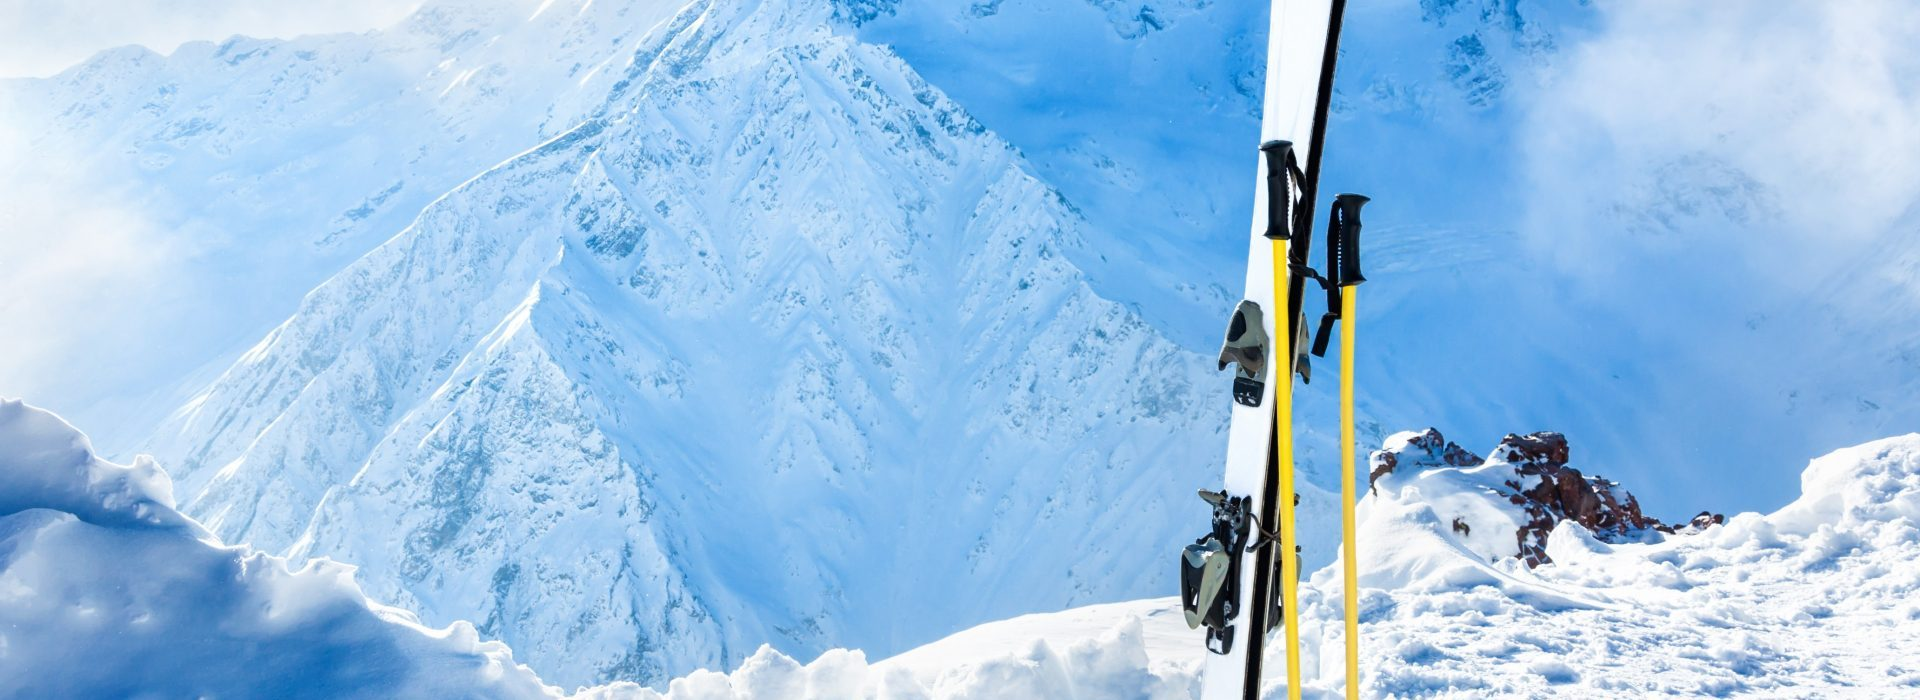 Holiday Gift Giving Guide For The Skier Or